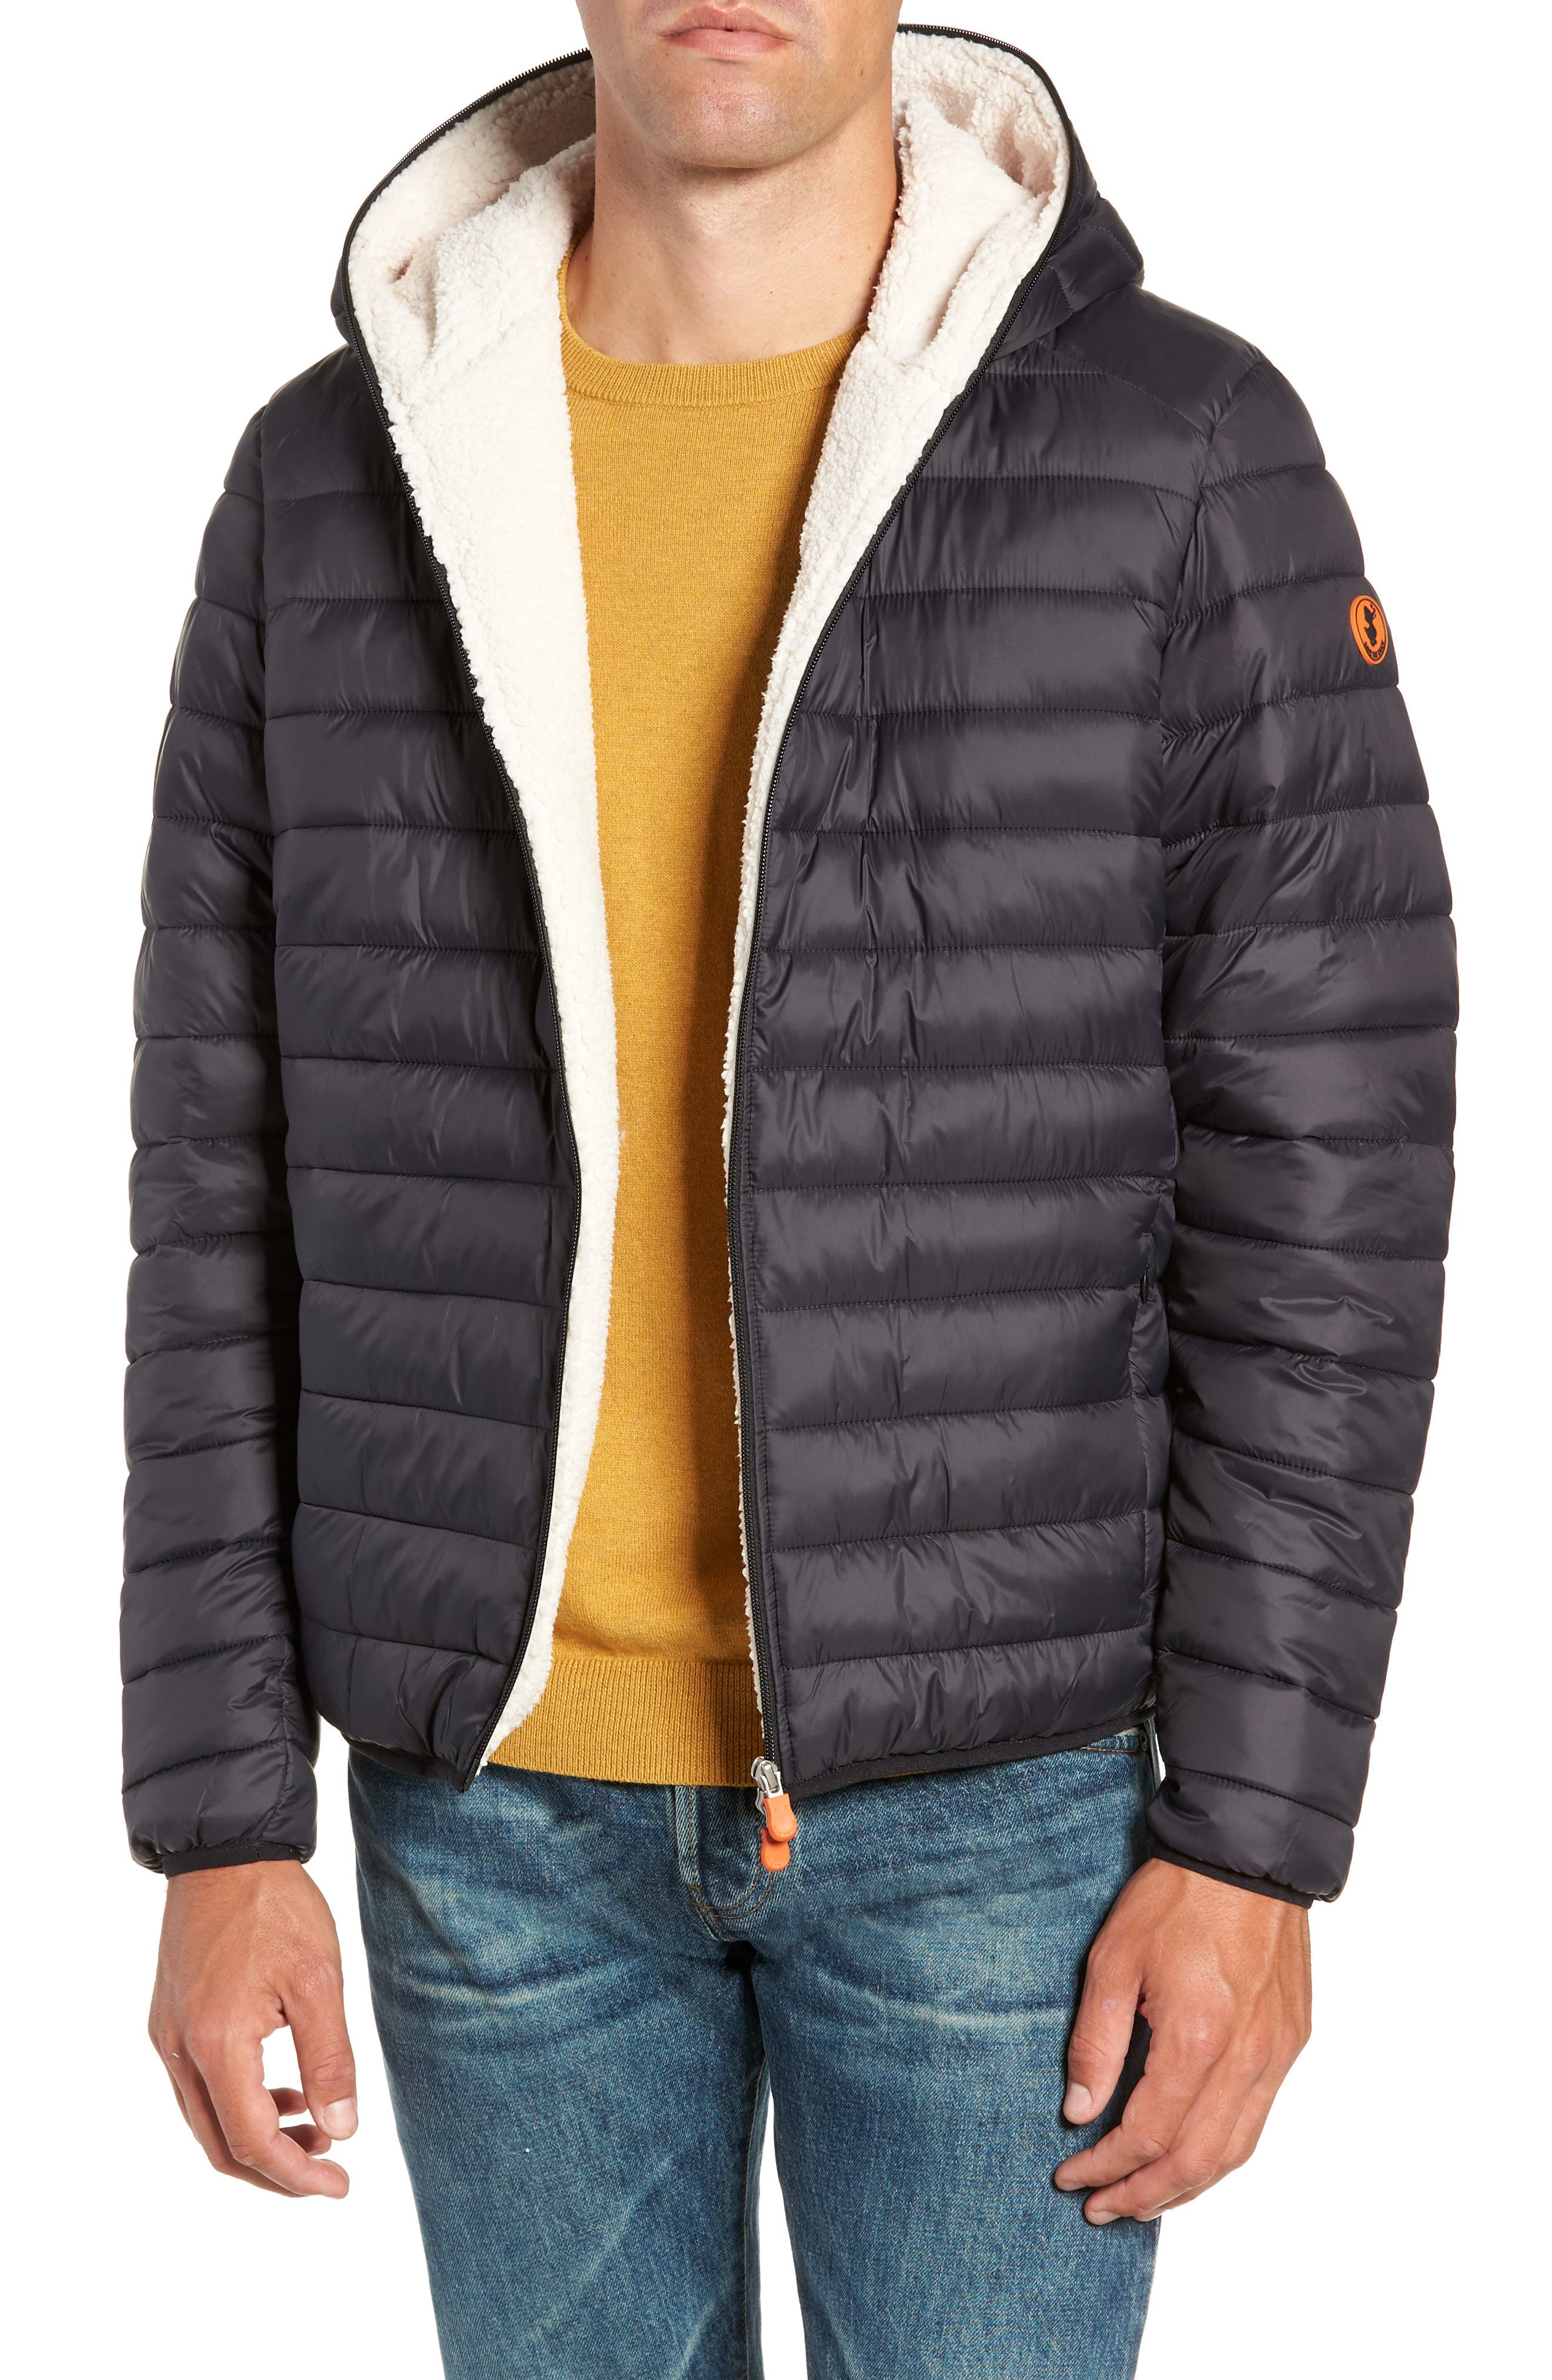 Hooded PLUMTECH<sup>®</sup> Insulated Packable Jacket,                         Main,                         color, 001